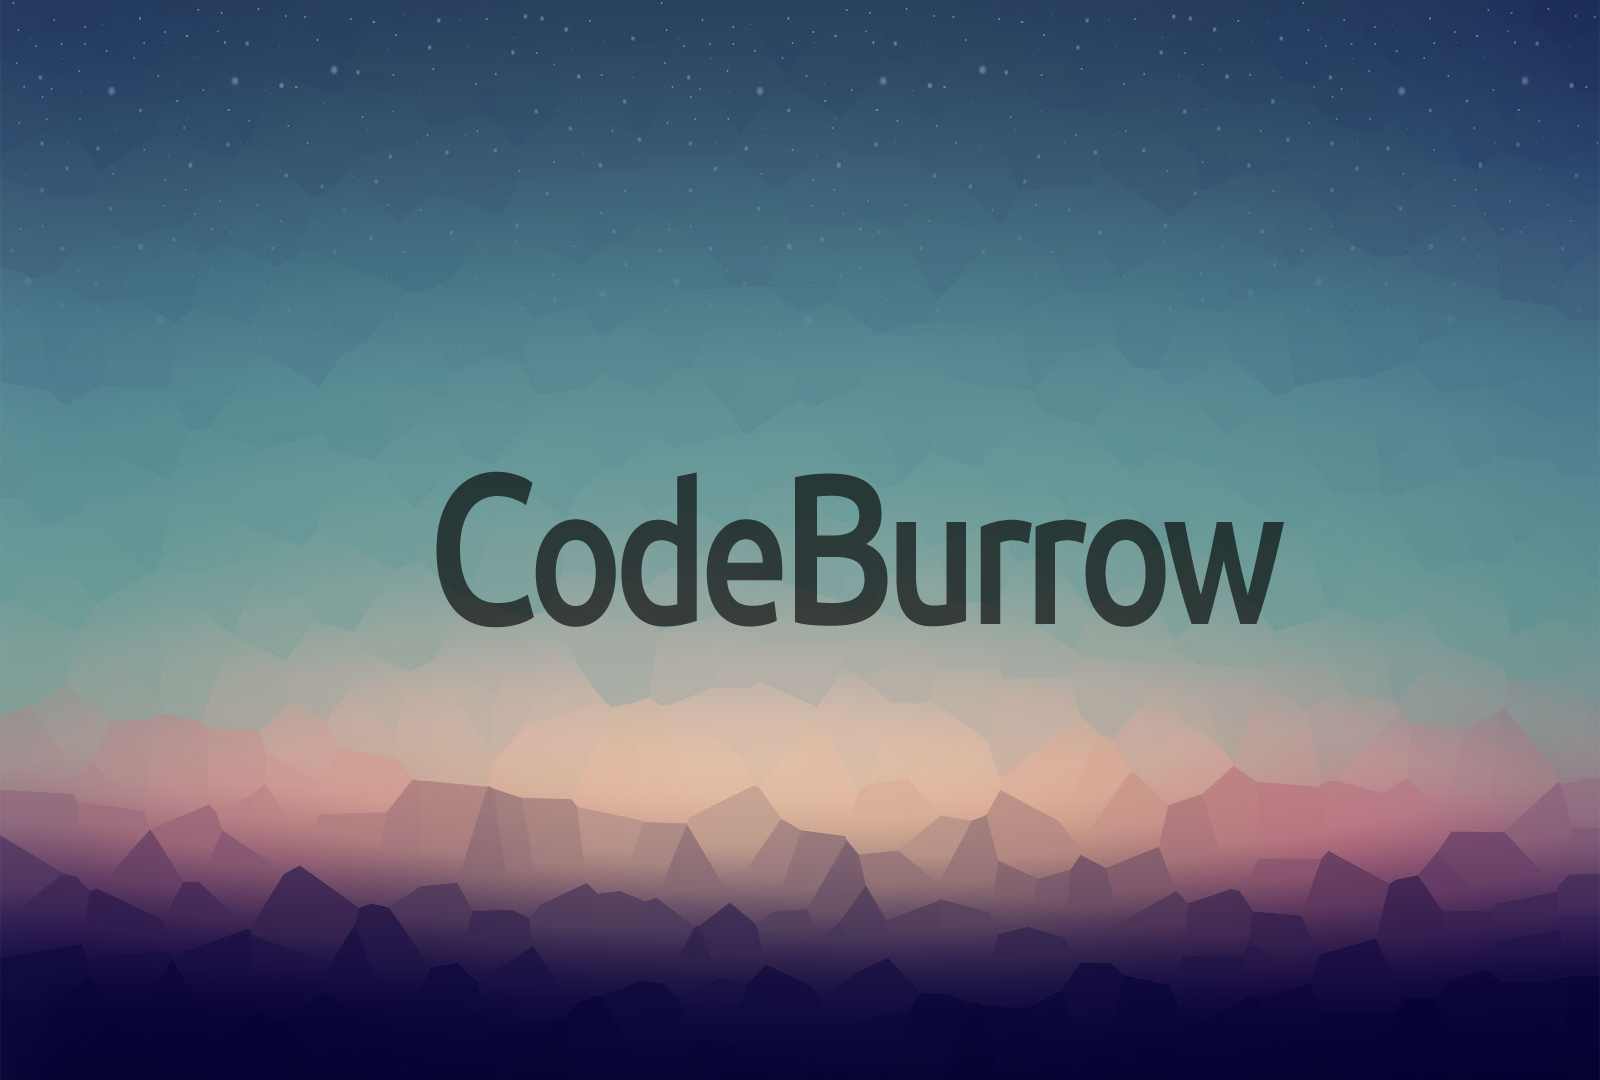 CodeBurrow